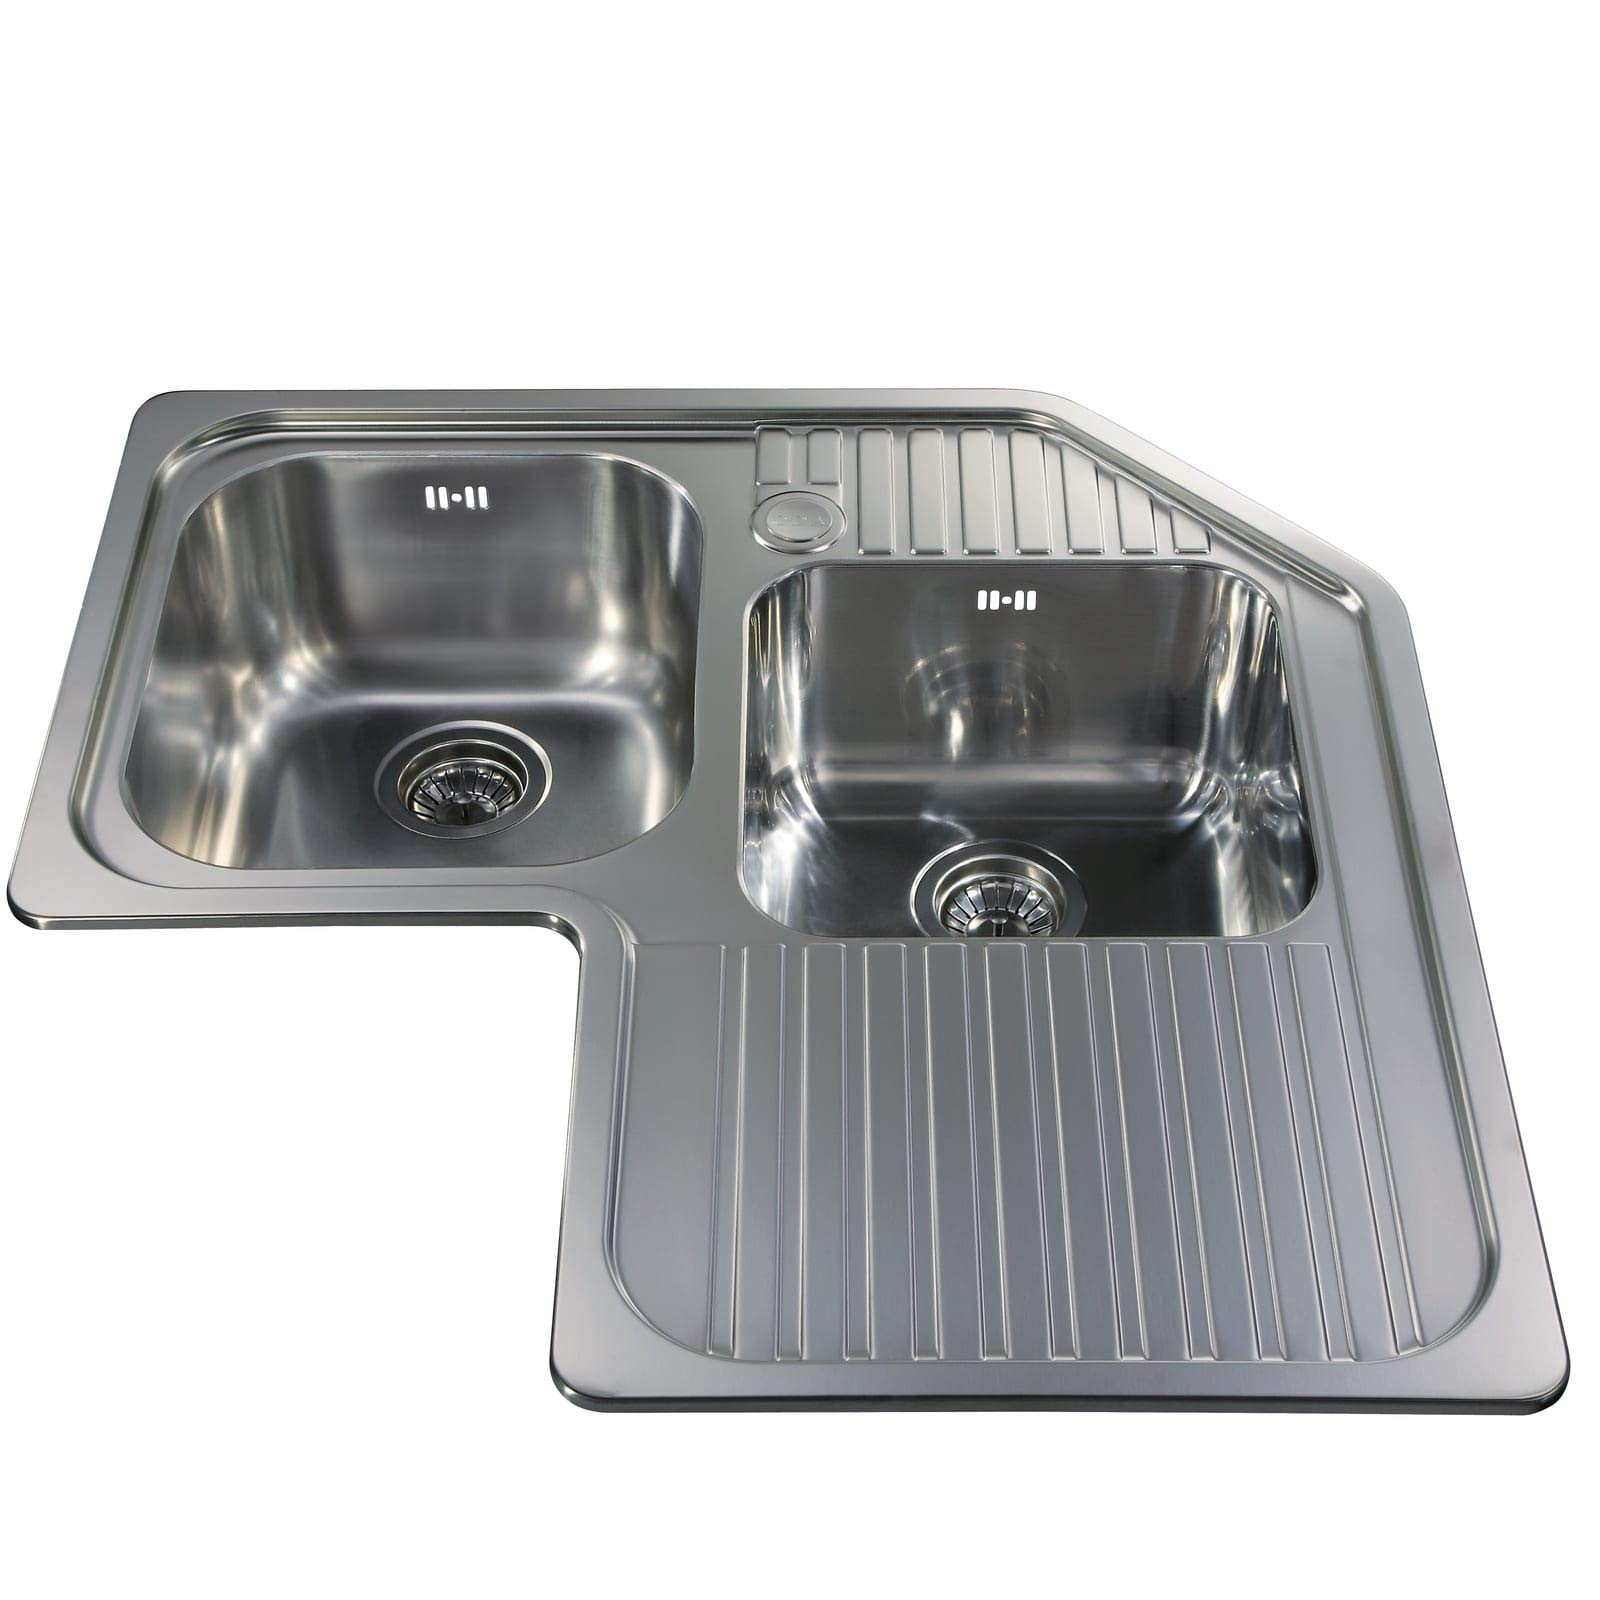 Cda Ccp3ss Stainless Steel 1mm Heavy Gauge Double Bowl Corner Kitchen Sink Buy Online In South Africa At Desertcart Co Za Productid 68952250